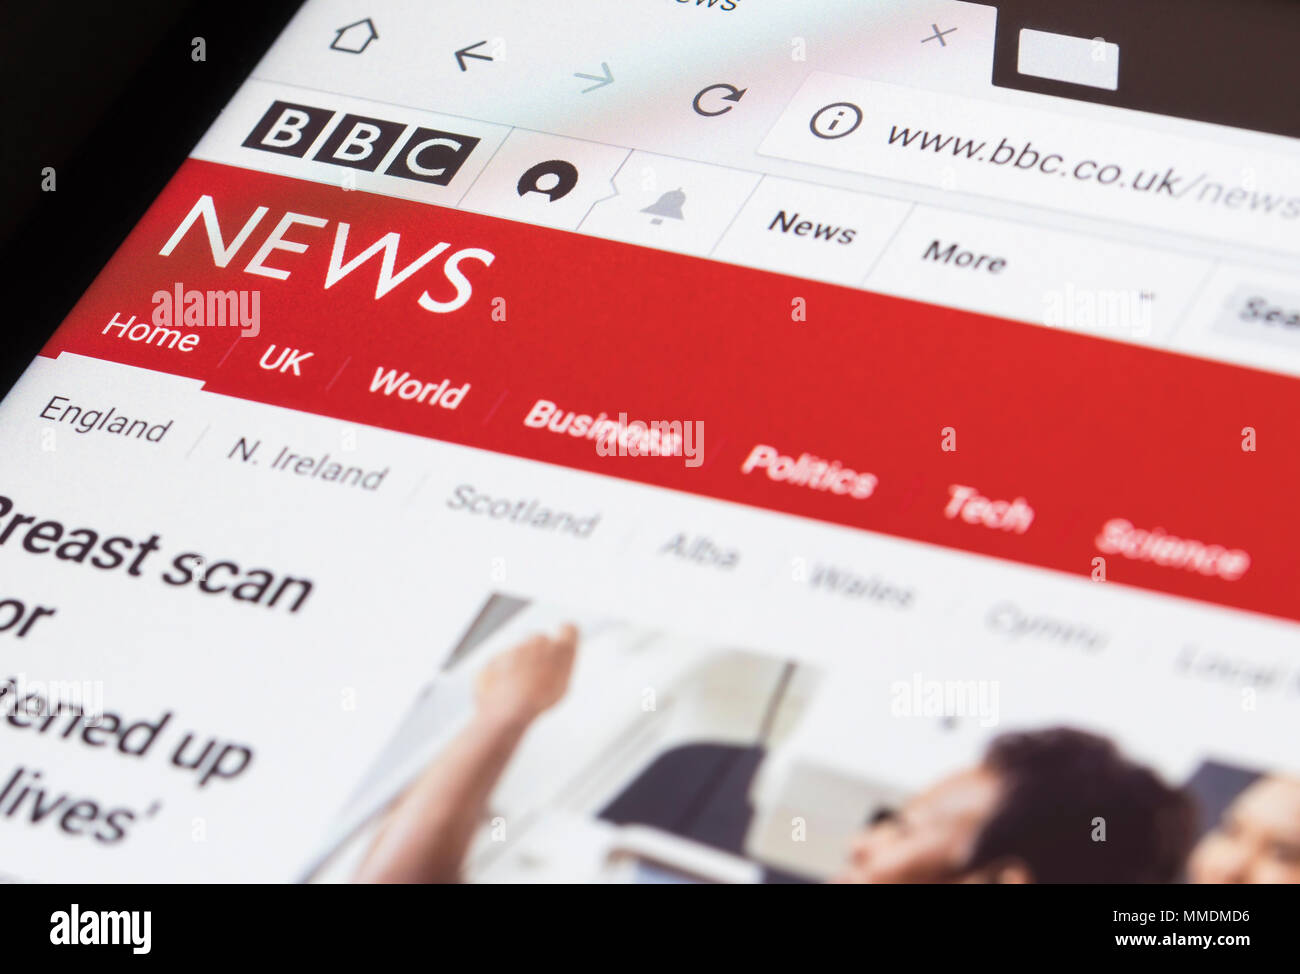 Reading the BBC news website on a tablet. - Stock Image